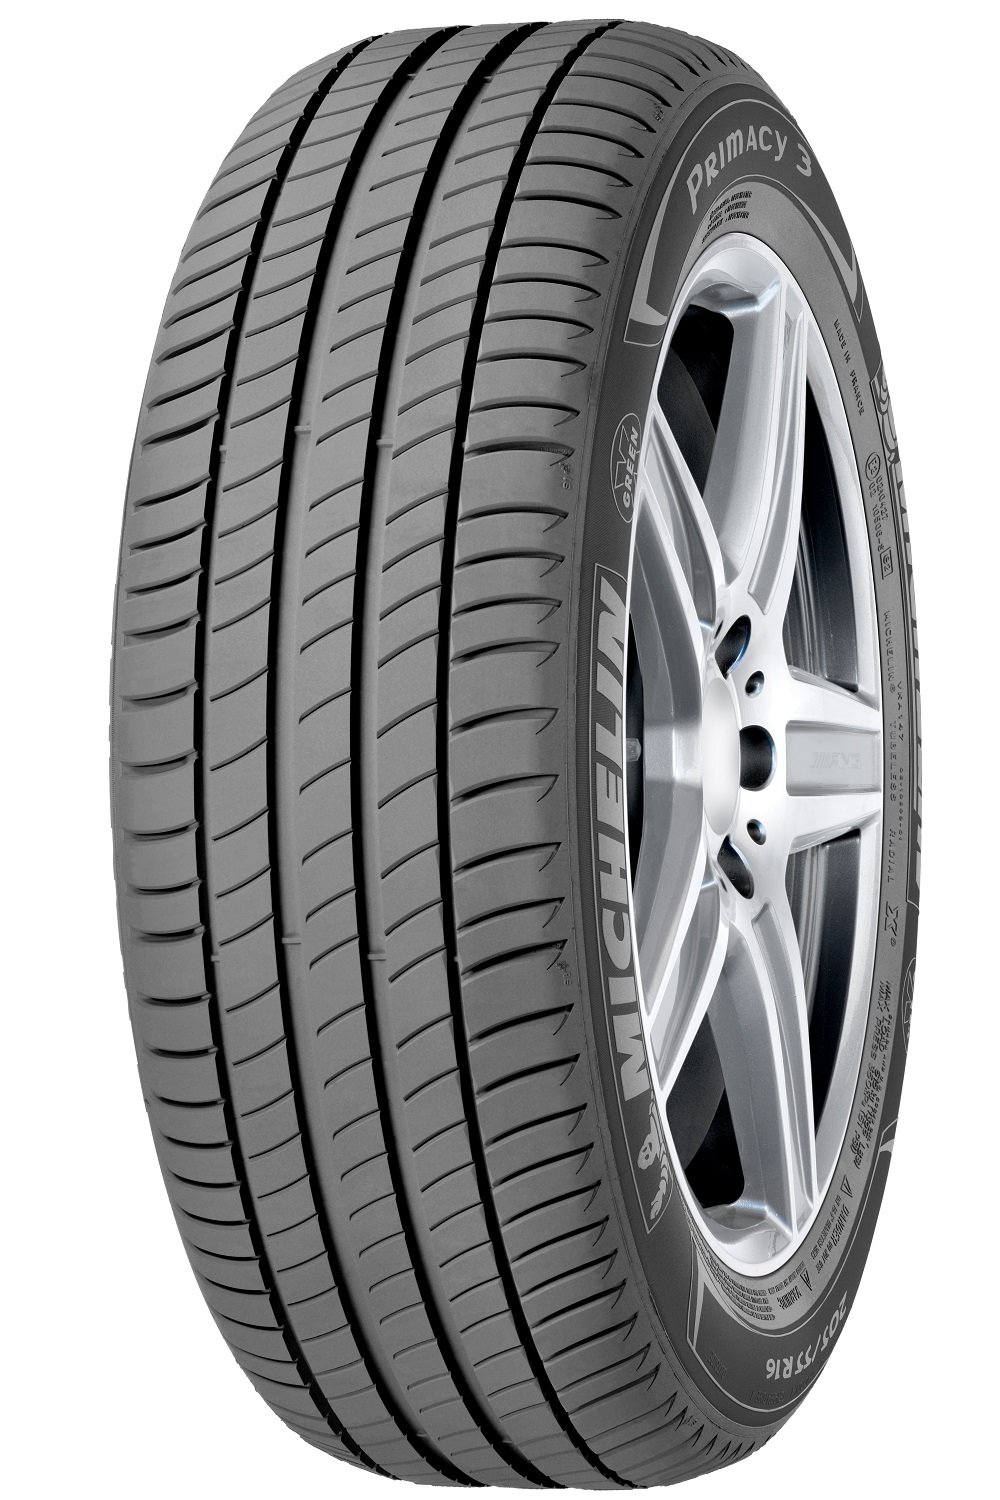 neumatico michelin primacy 3 205 55 17 95 w